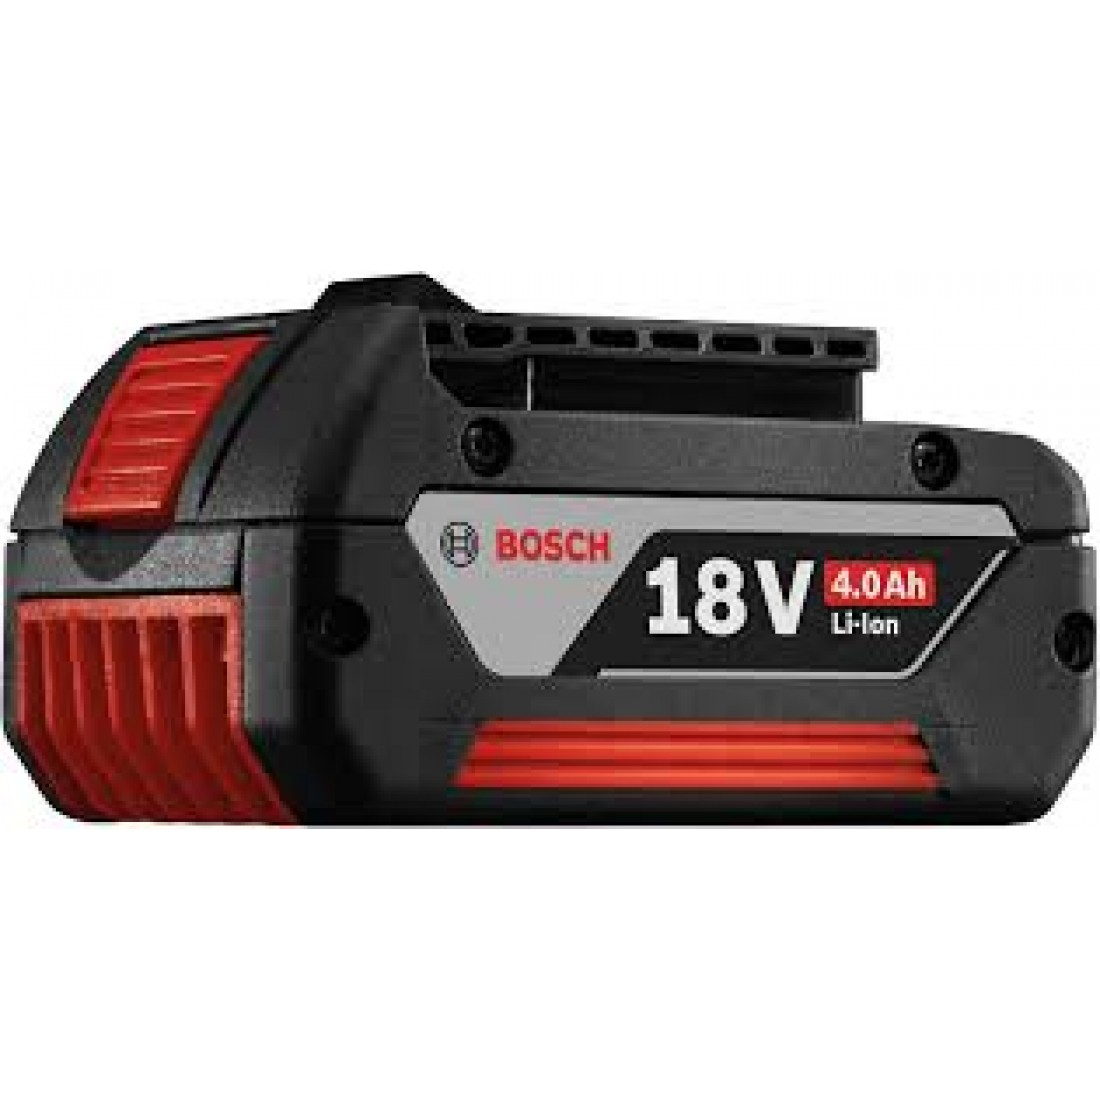 bosch drill from 12v nicd to 18v li ion drill sorbus. Black Bedroom Furniture Sets. Home Design Ideas